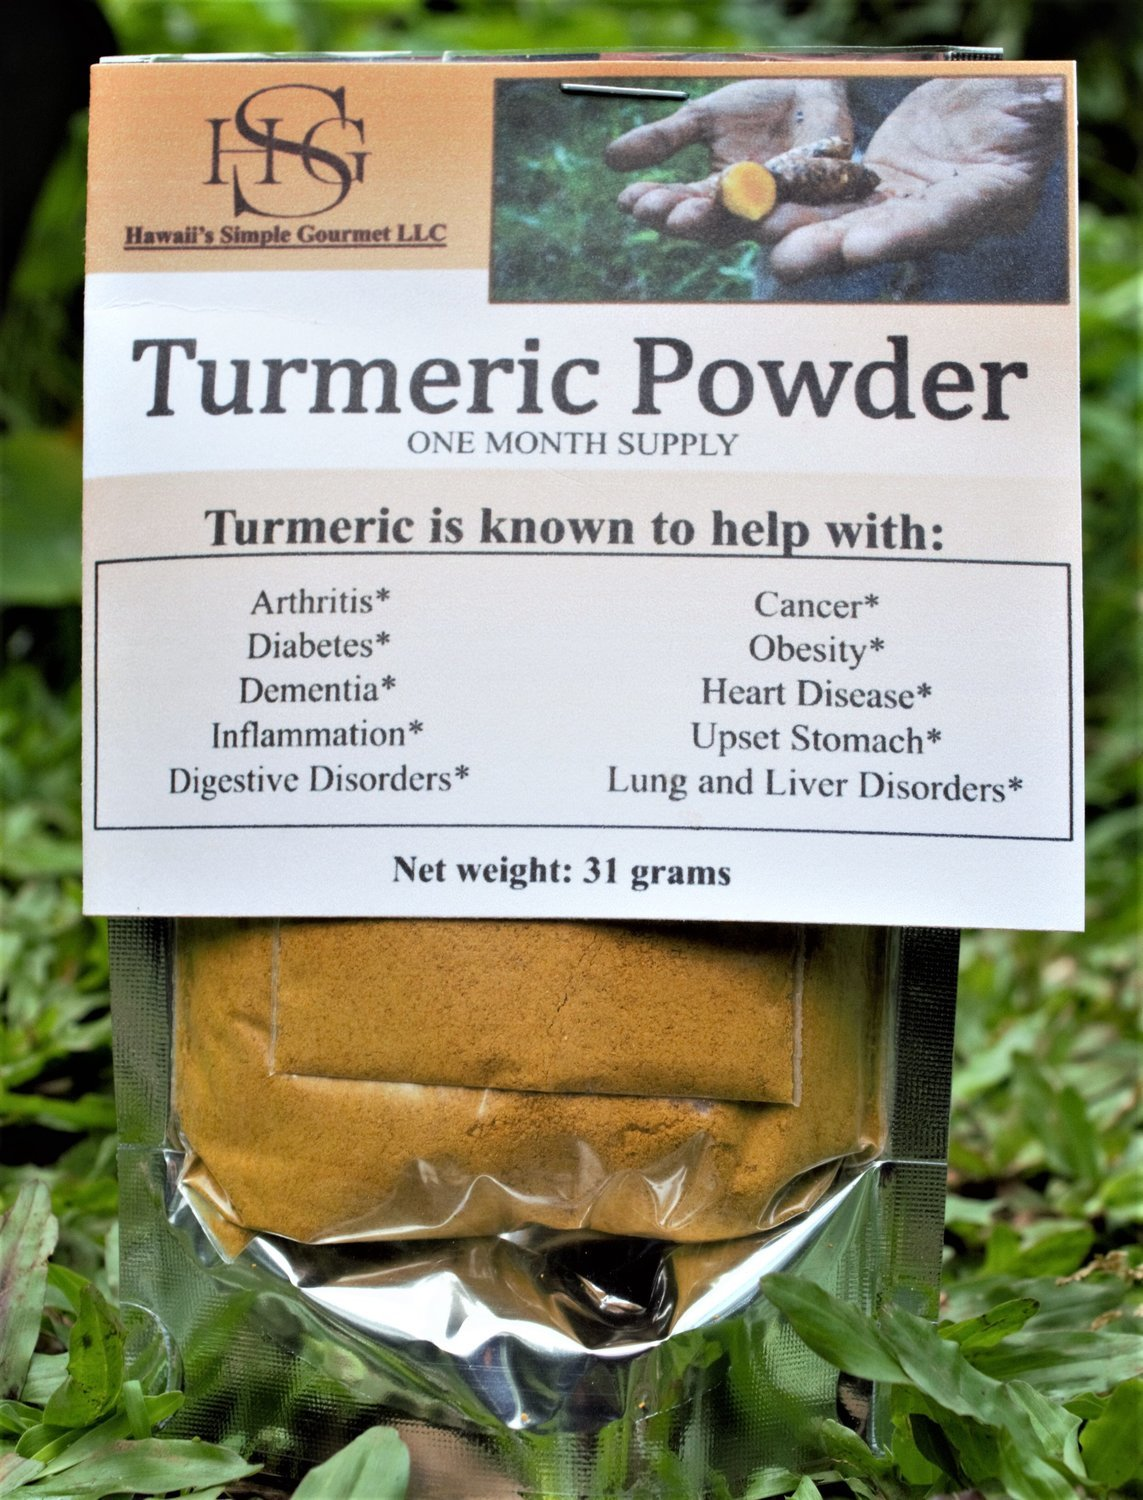 Turmeric Powder - One Month Supply